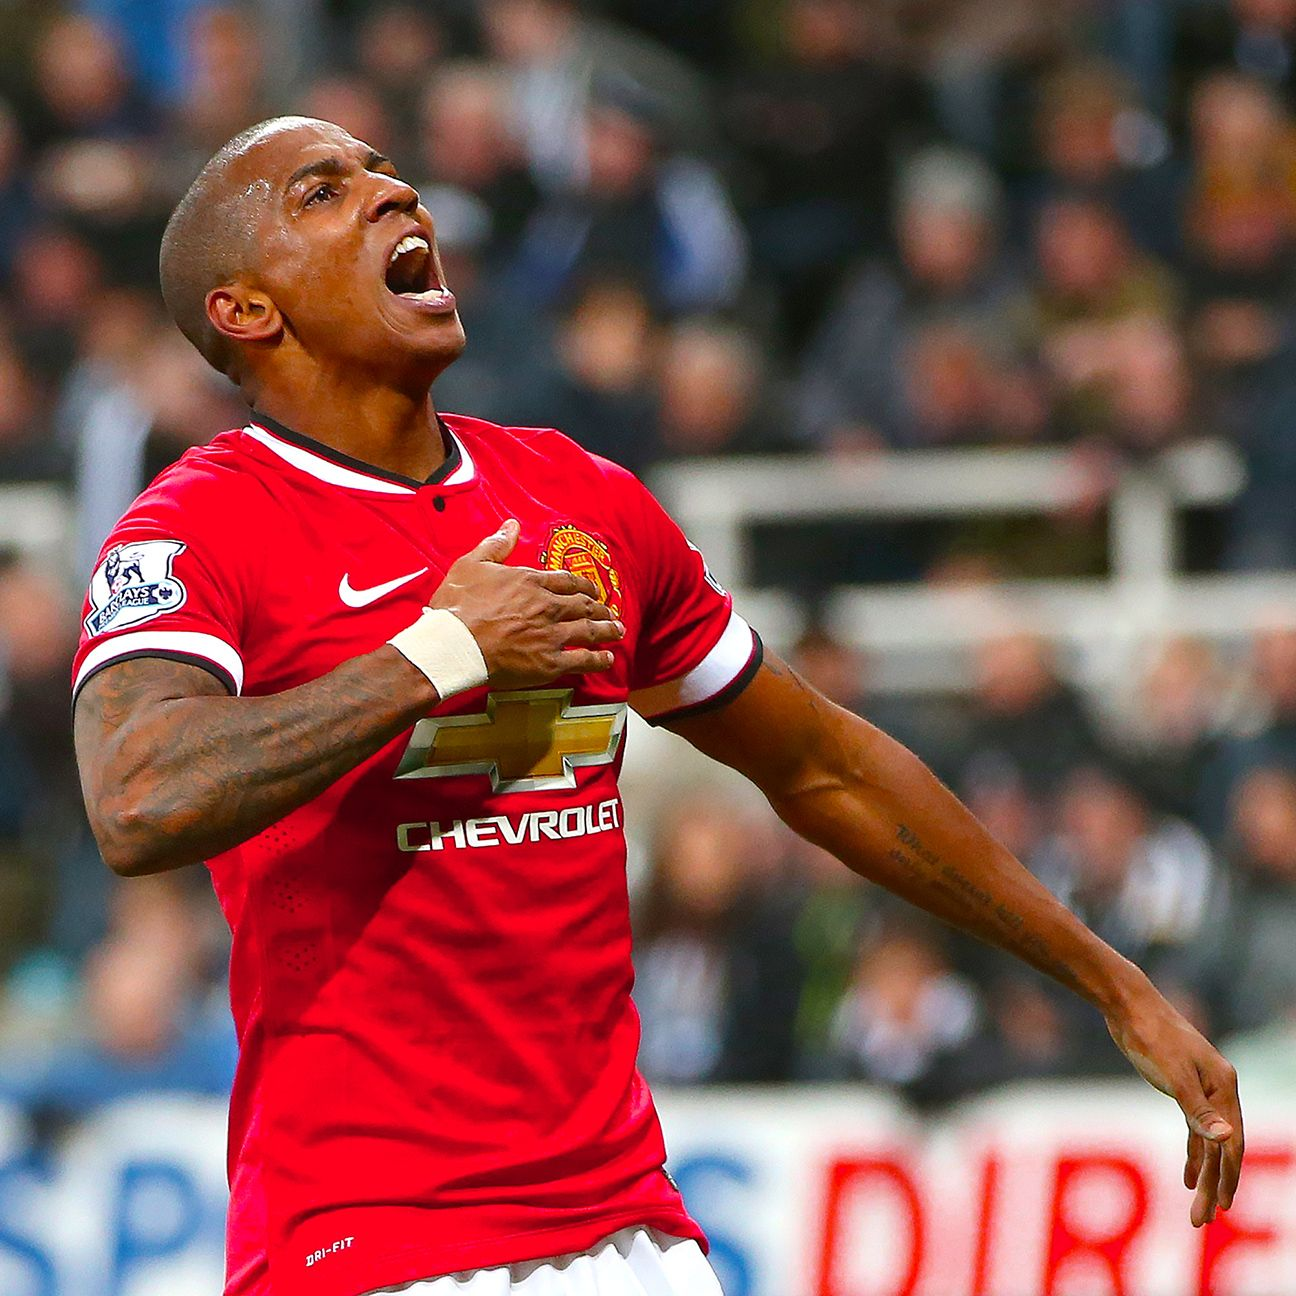 Unlike some of Manchester United's big-money signings, the unheralded Ashley Young has produced under the tutelage of Louis van Gaal and has helped United stay in the hunt for a Champions League spot.